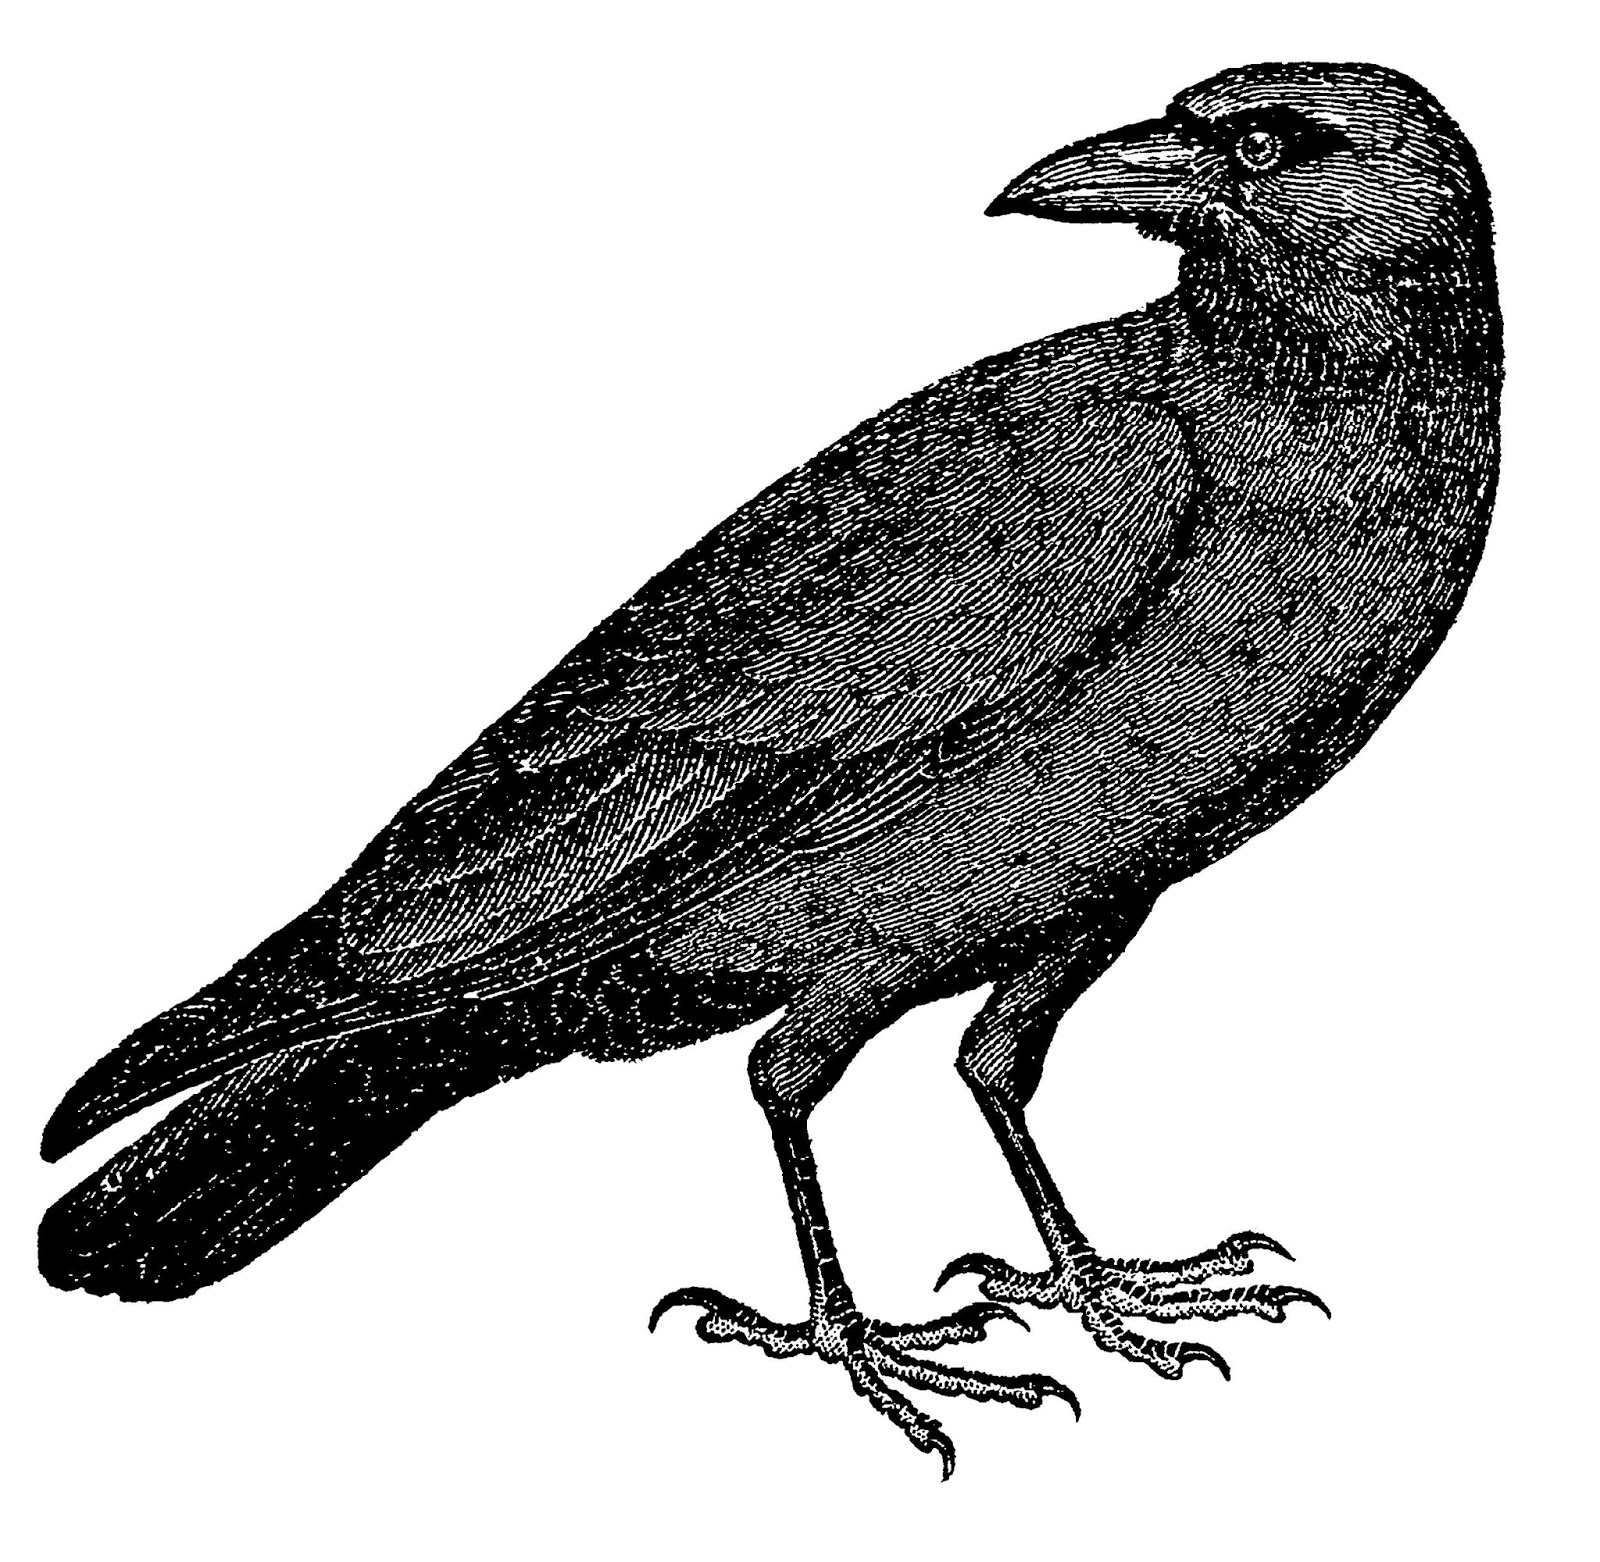 Crow pencil drawing free download best crow pencil drawing on